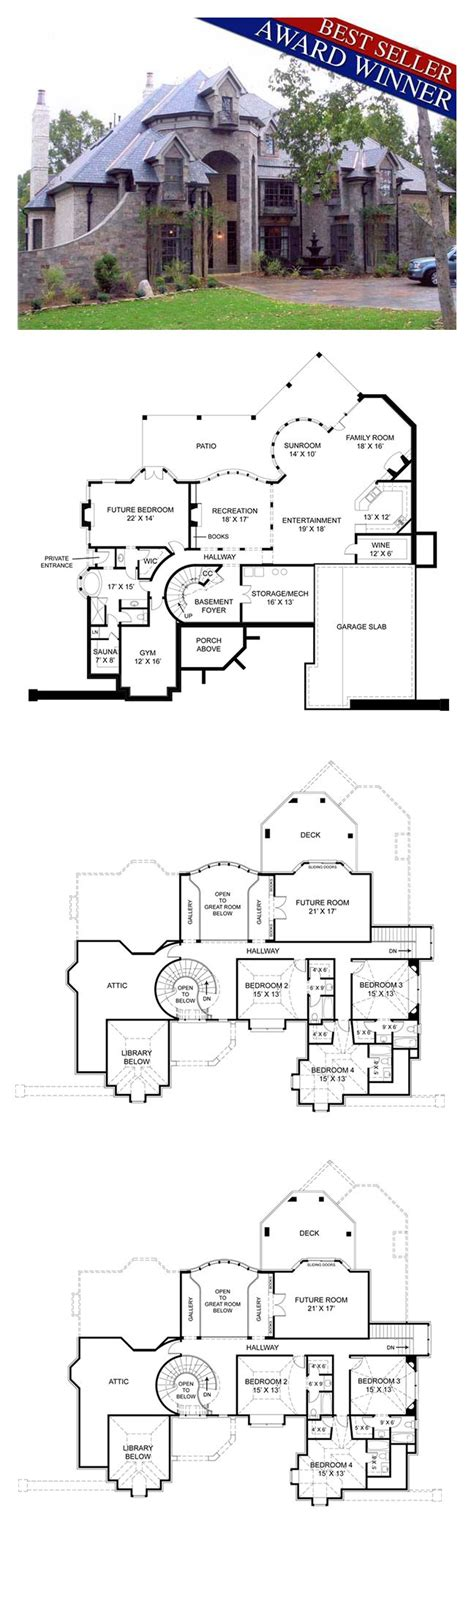 tudor revival floor plans gothic tudor floor plans house pretentious mansion revival